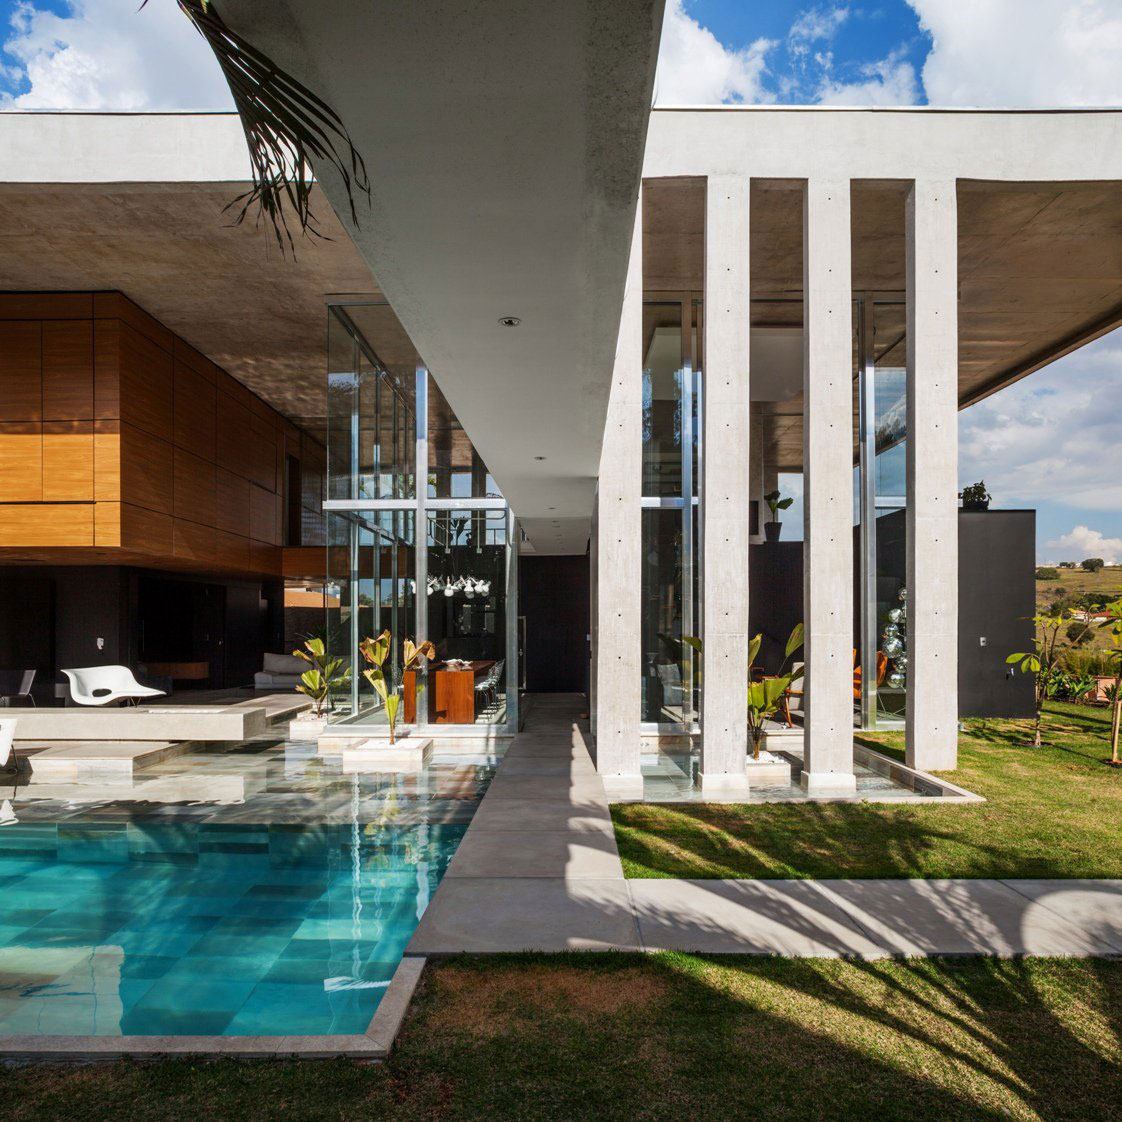 The Botucatu House stands as an architectural masterpiece 5 The Botucatu House stands as an architectural masterpiece